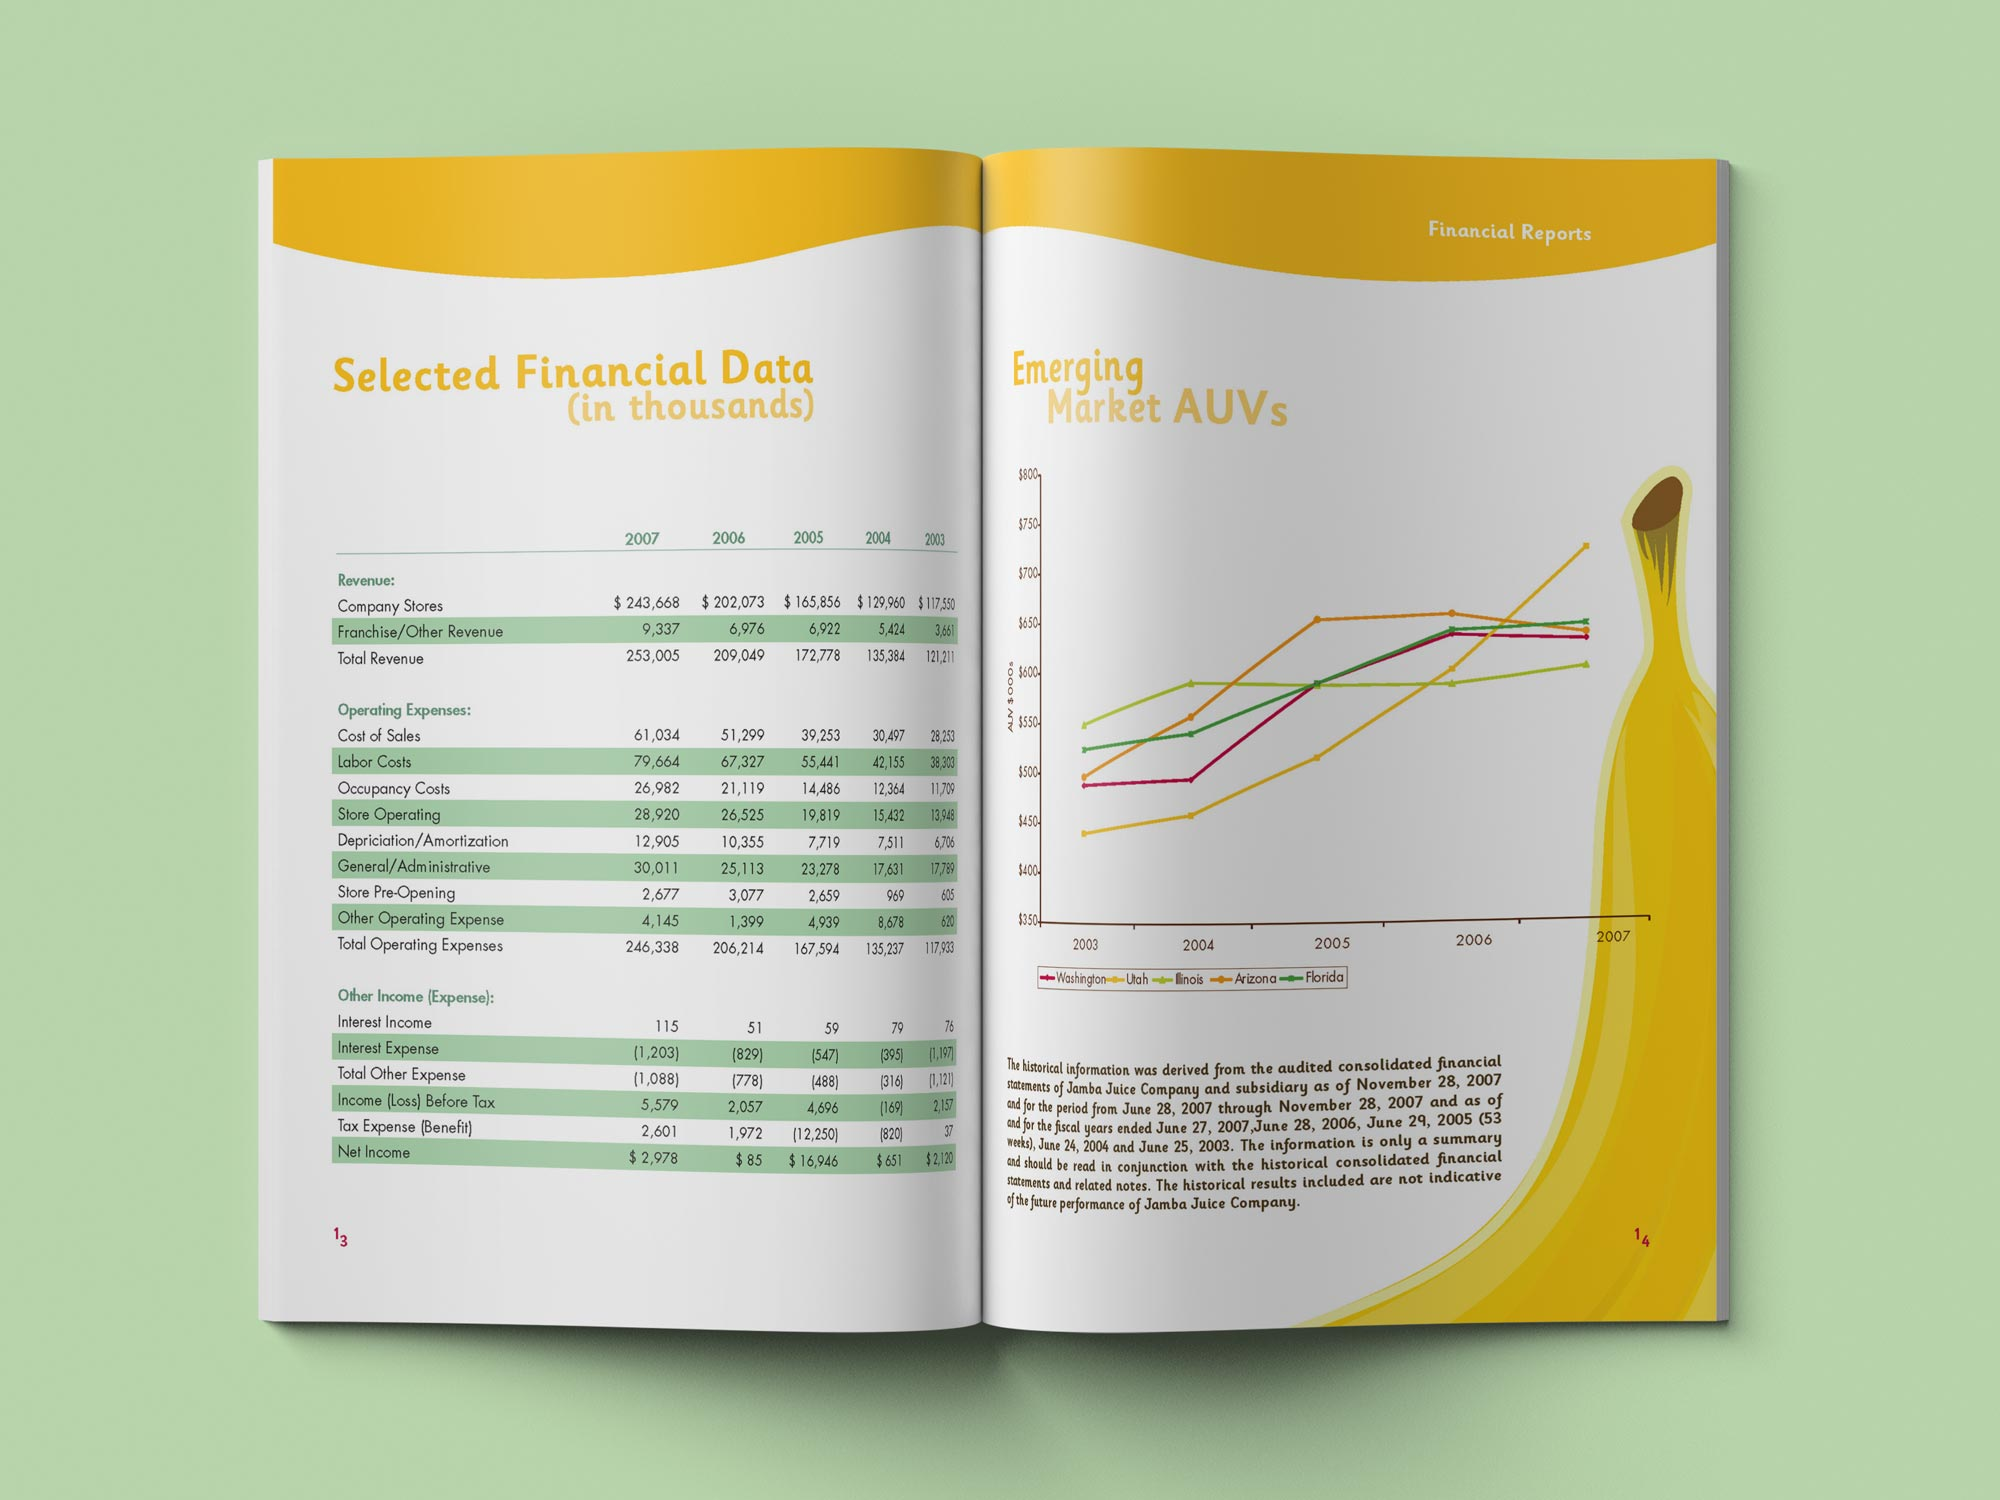 Jamba Juice Annual Report Financial Data spread.